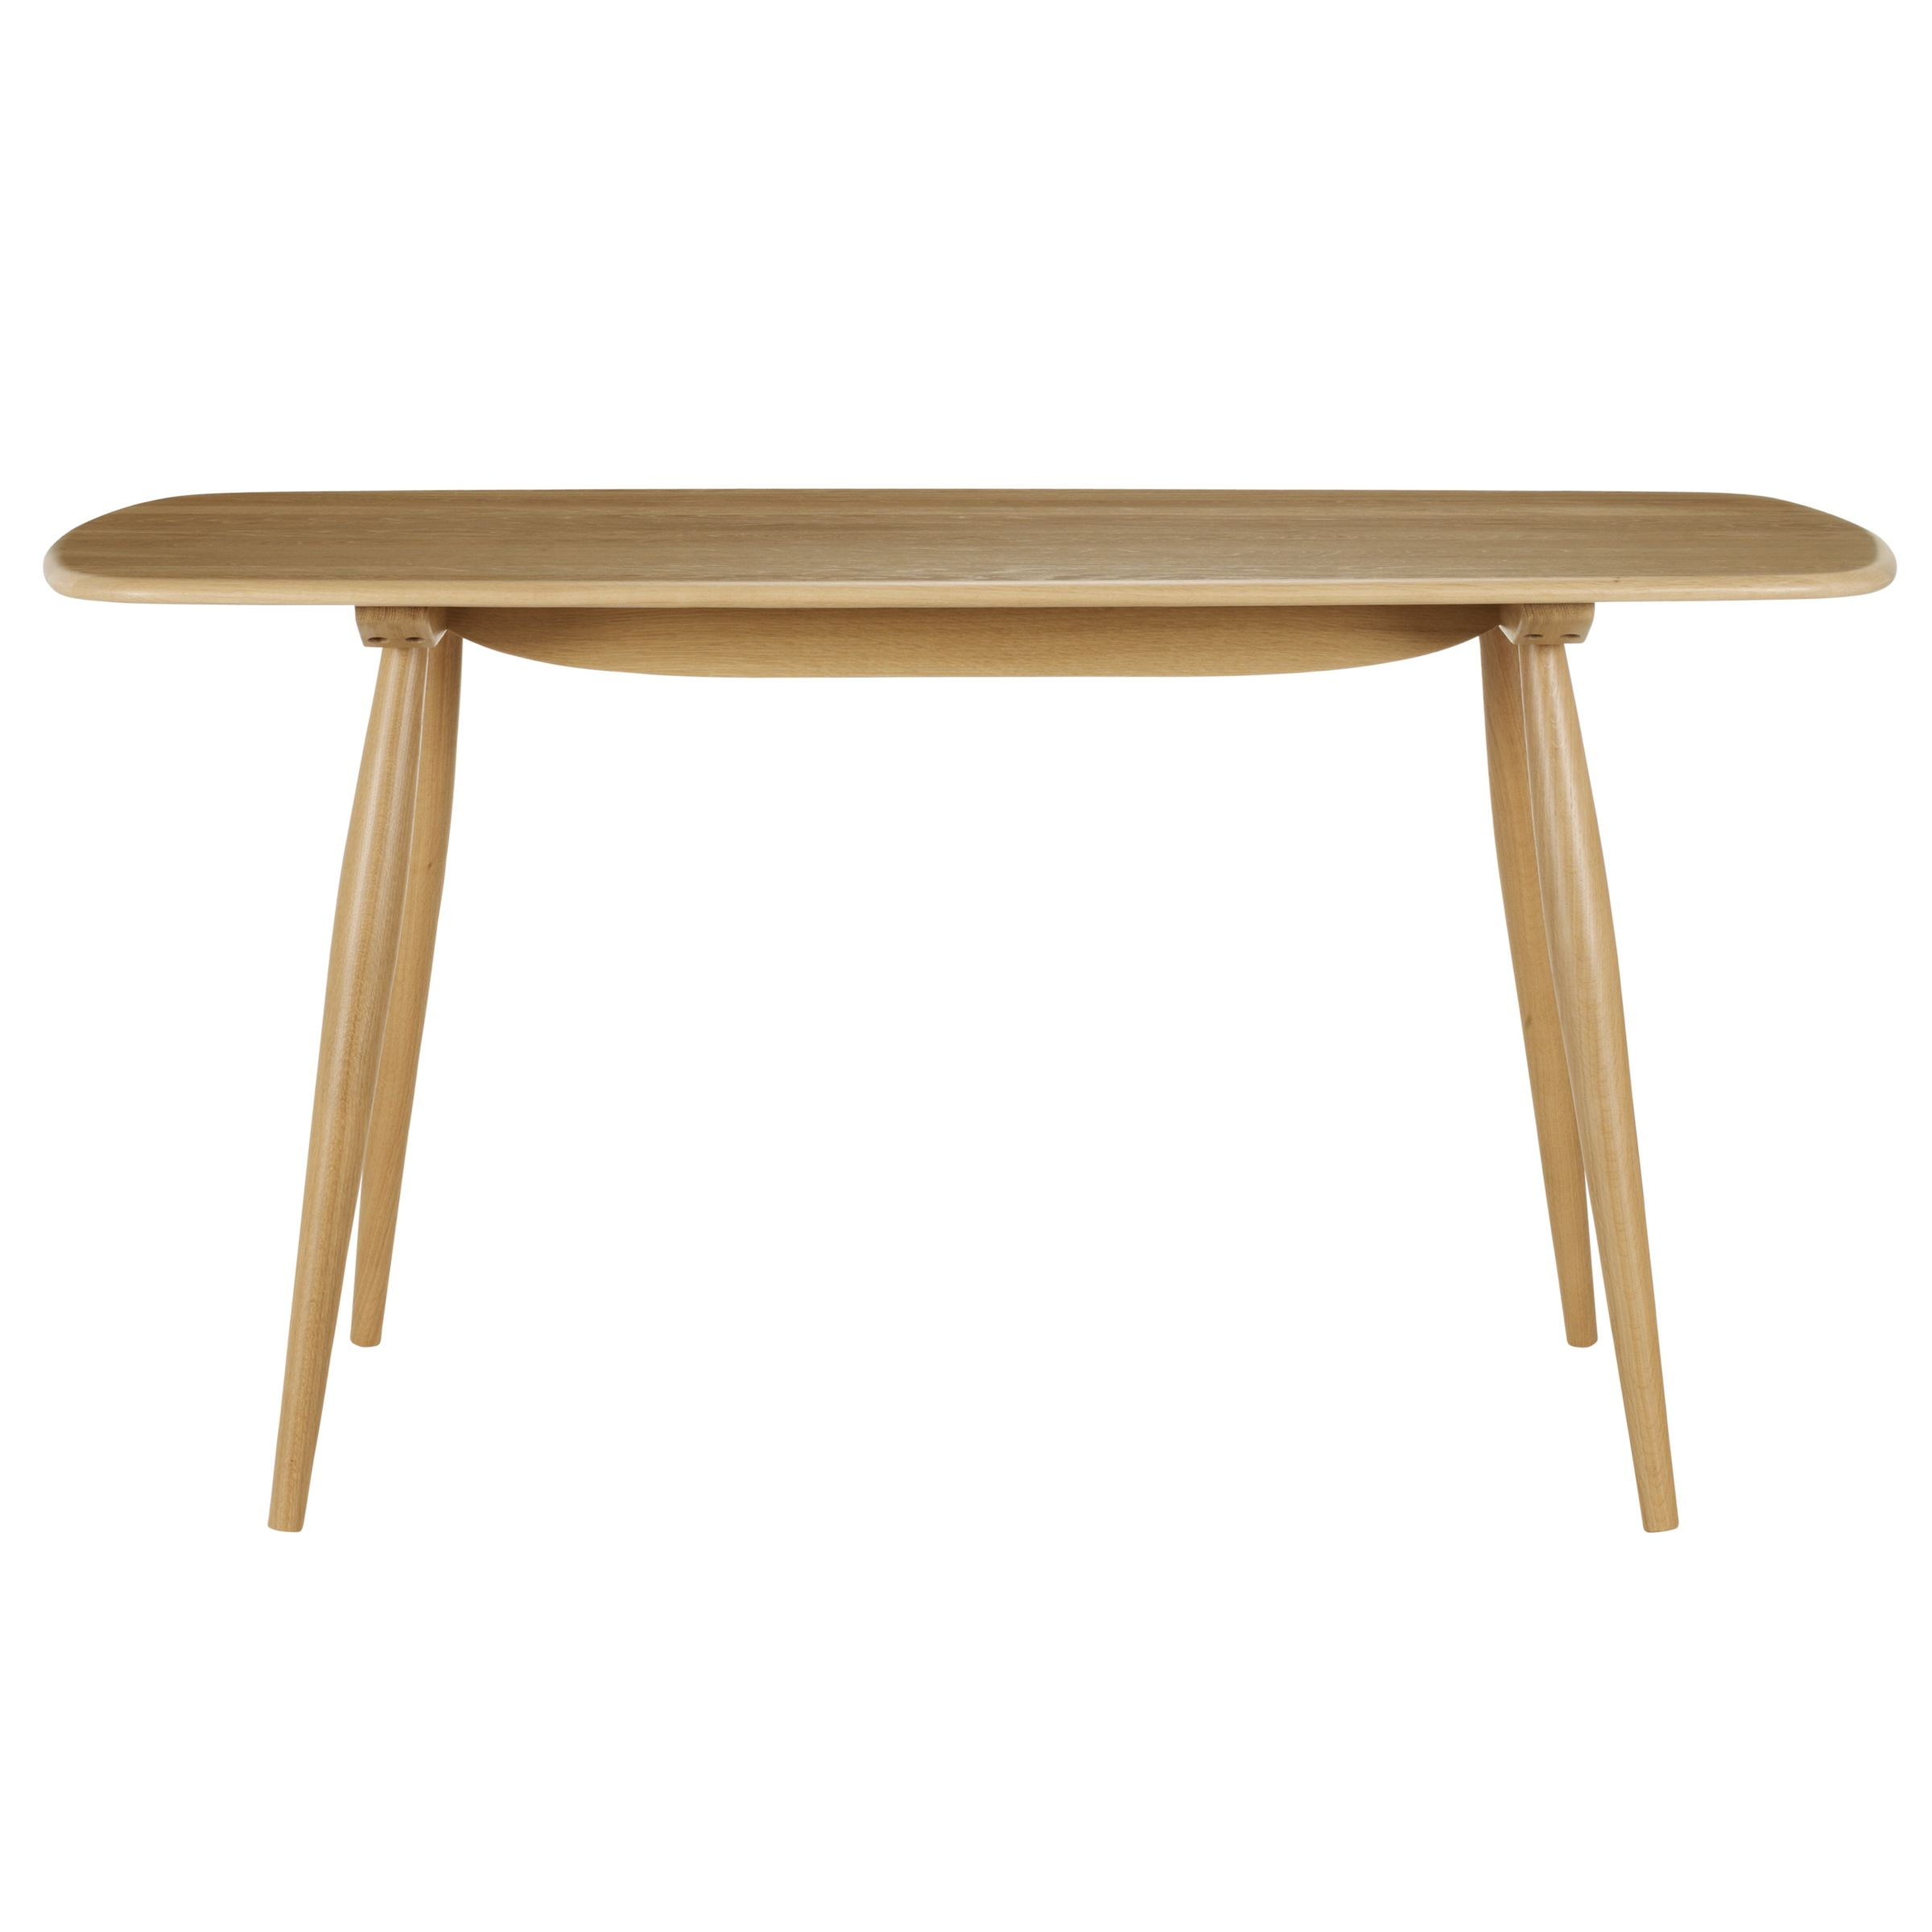 ercol dining tables : 230946694 from www.comparestoreprices.co.uk size 2400 x 2400 jpeg 121kB